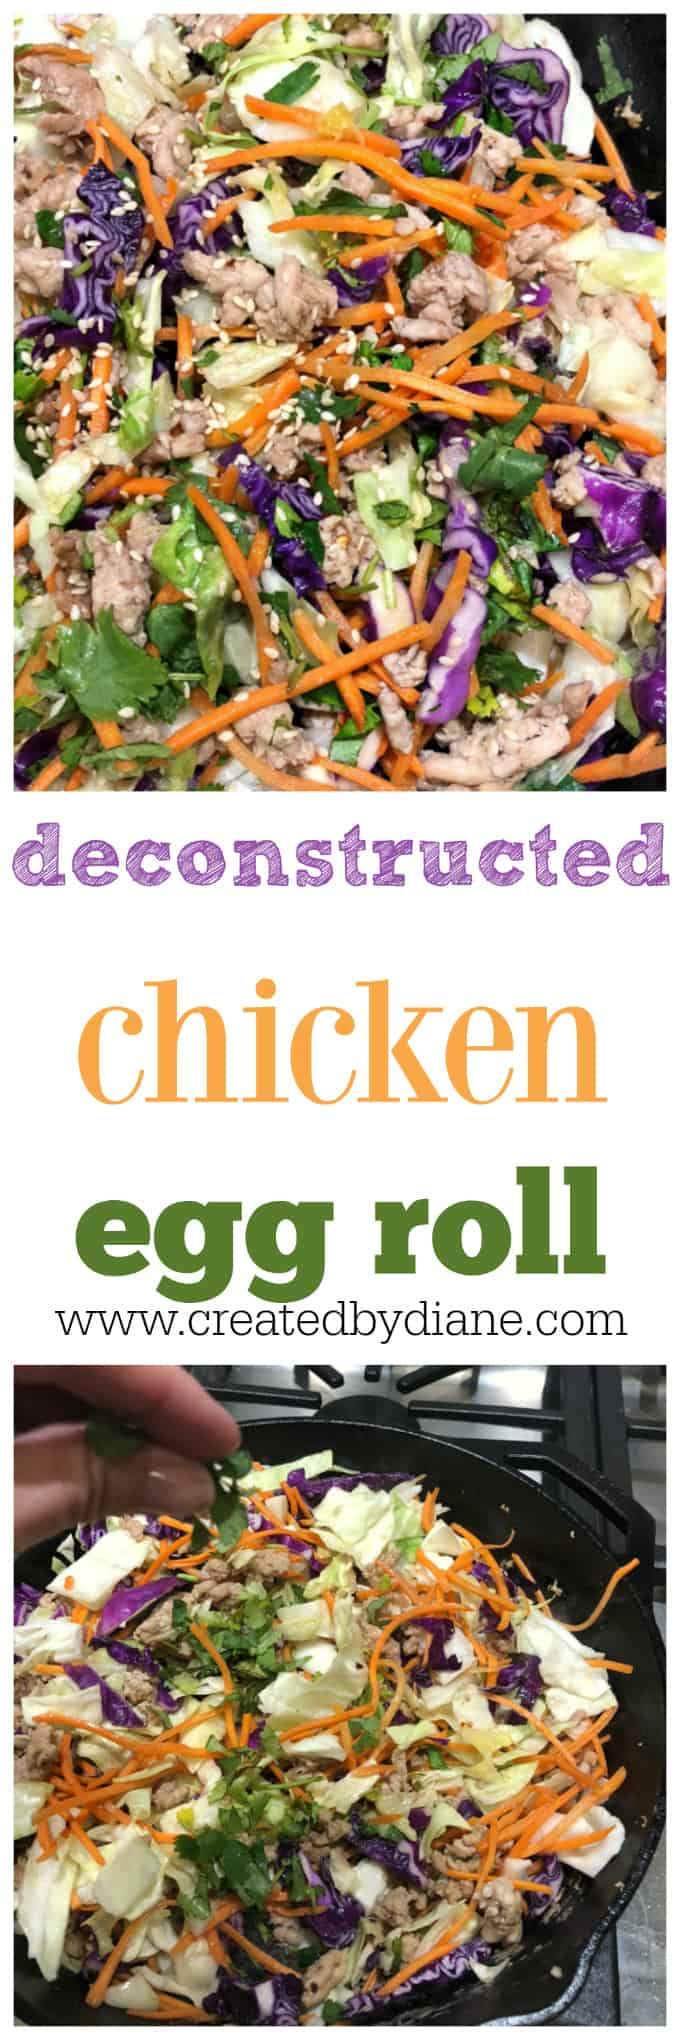 deconstructed egg roll in a bowl a delicious low carb recipe you'll enjoy many times over, takes 10 minutes to make #lowcarb #lchf #chicken